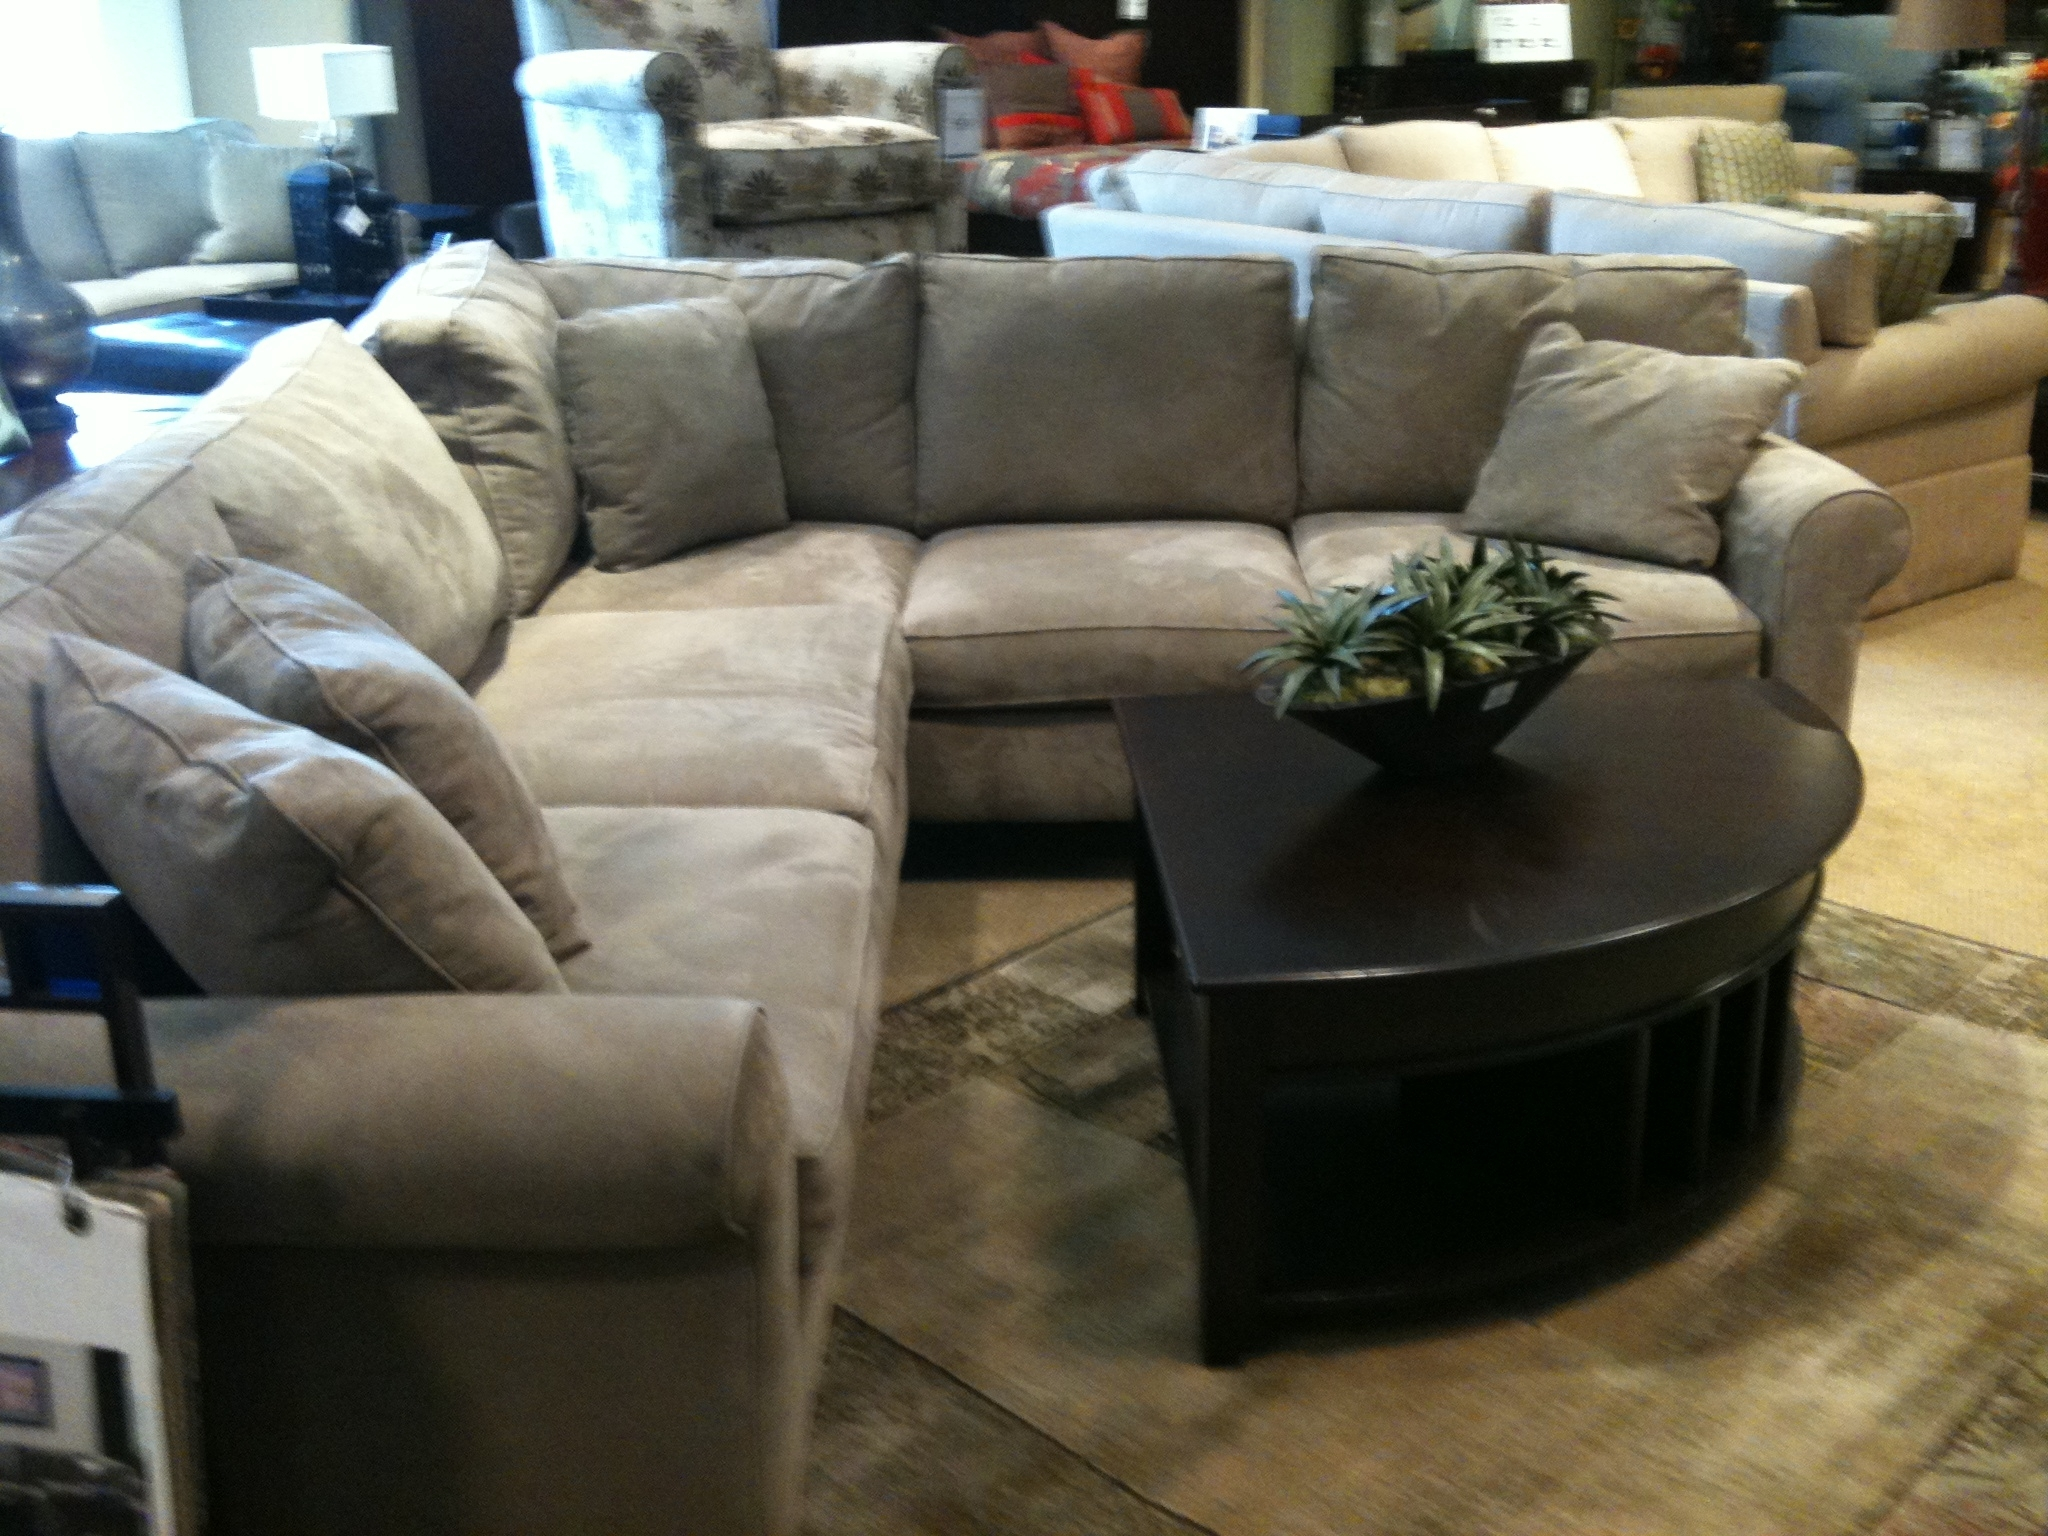 New Havertys Sectional Sofa 91 For Sofa Table Ideas With Havertys For Sectional Sofas At Havertys (Image 9 of 10)